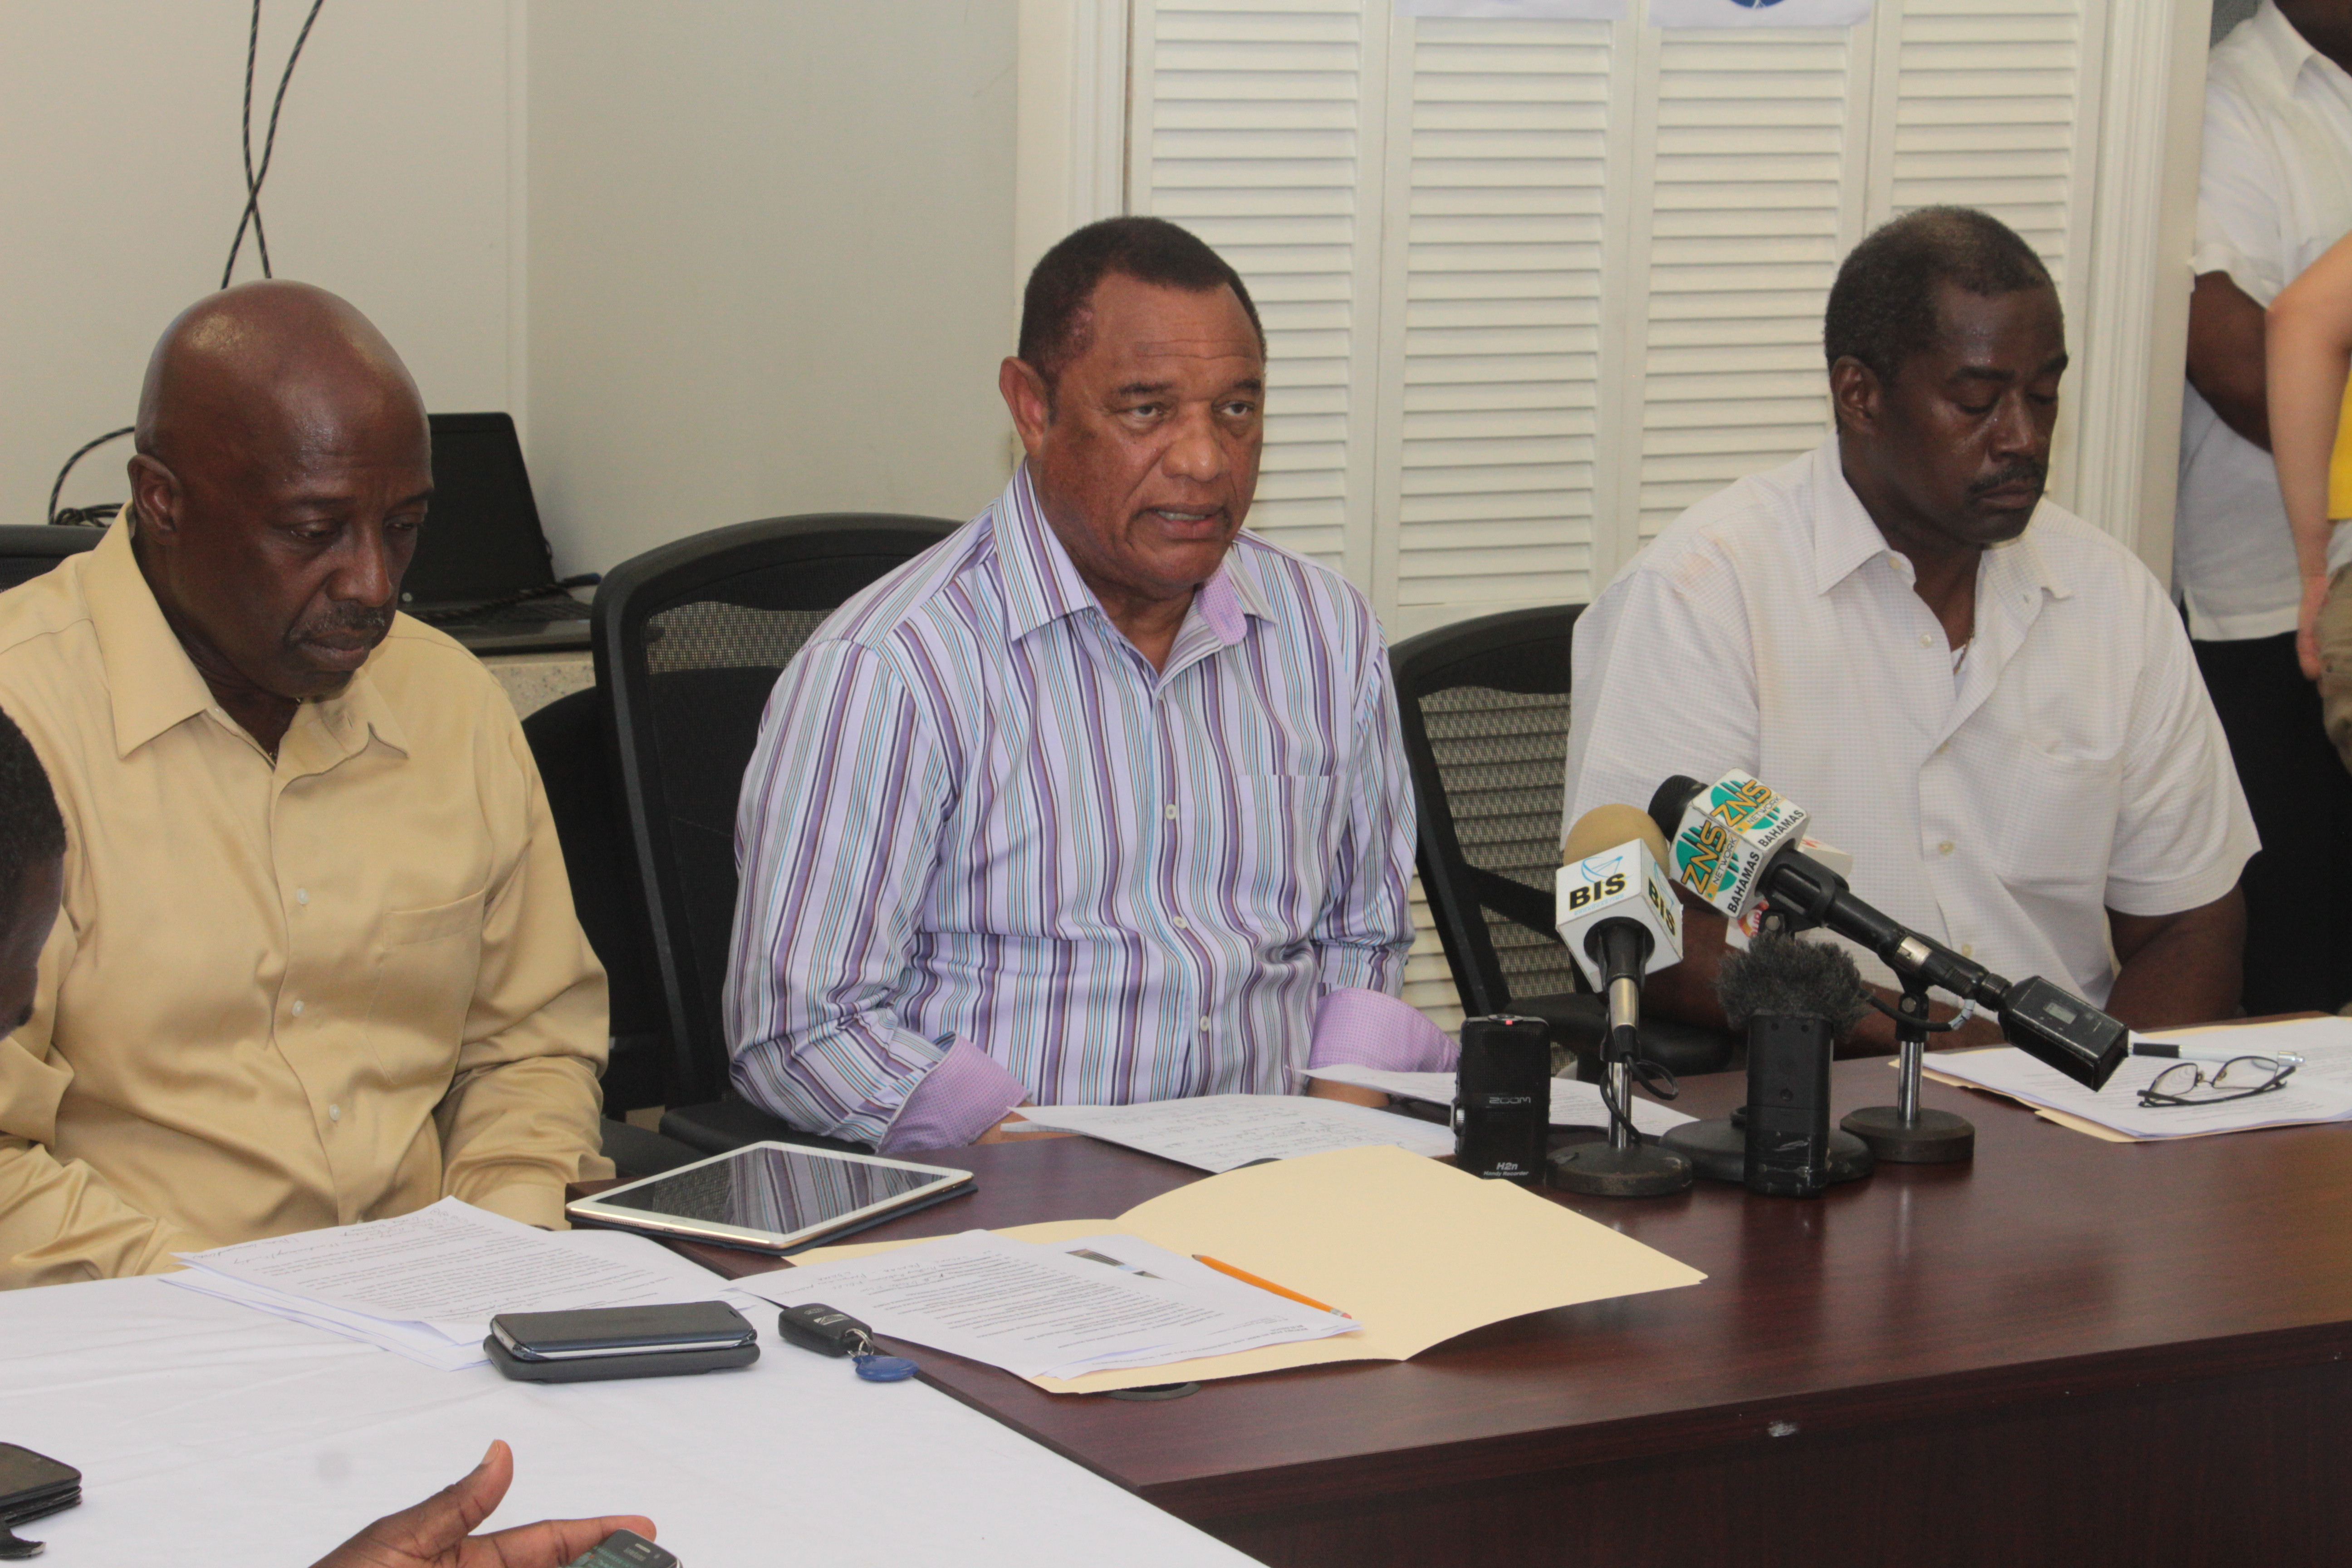 minister shane gibson is coordinator for hurricane matthew relief nassau the prime minister and minister of finance the rt hon perry christie the national emergency management agency and pertinent